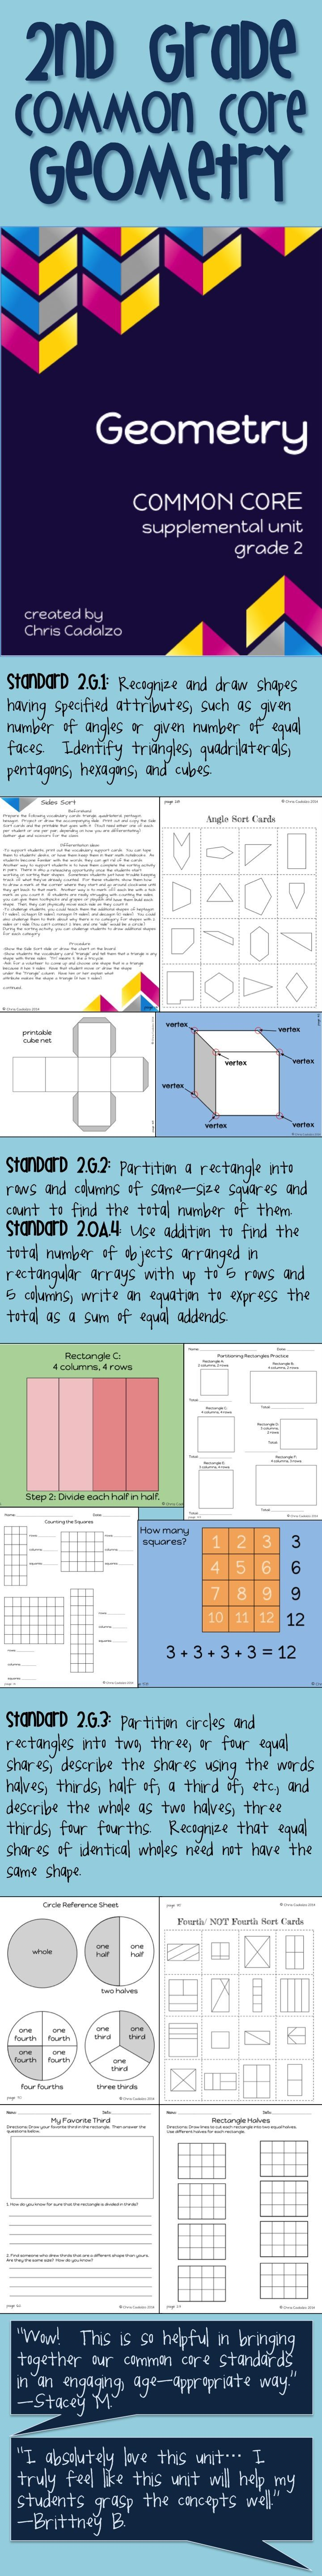 12 best 3rd Grade images on Pinterest | Common core math, Common ...